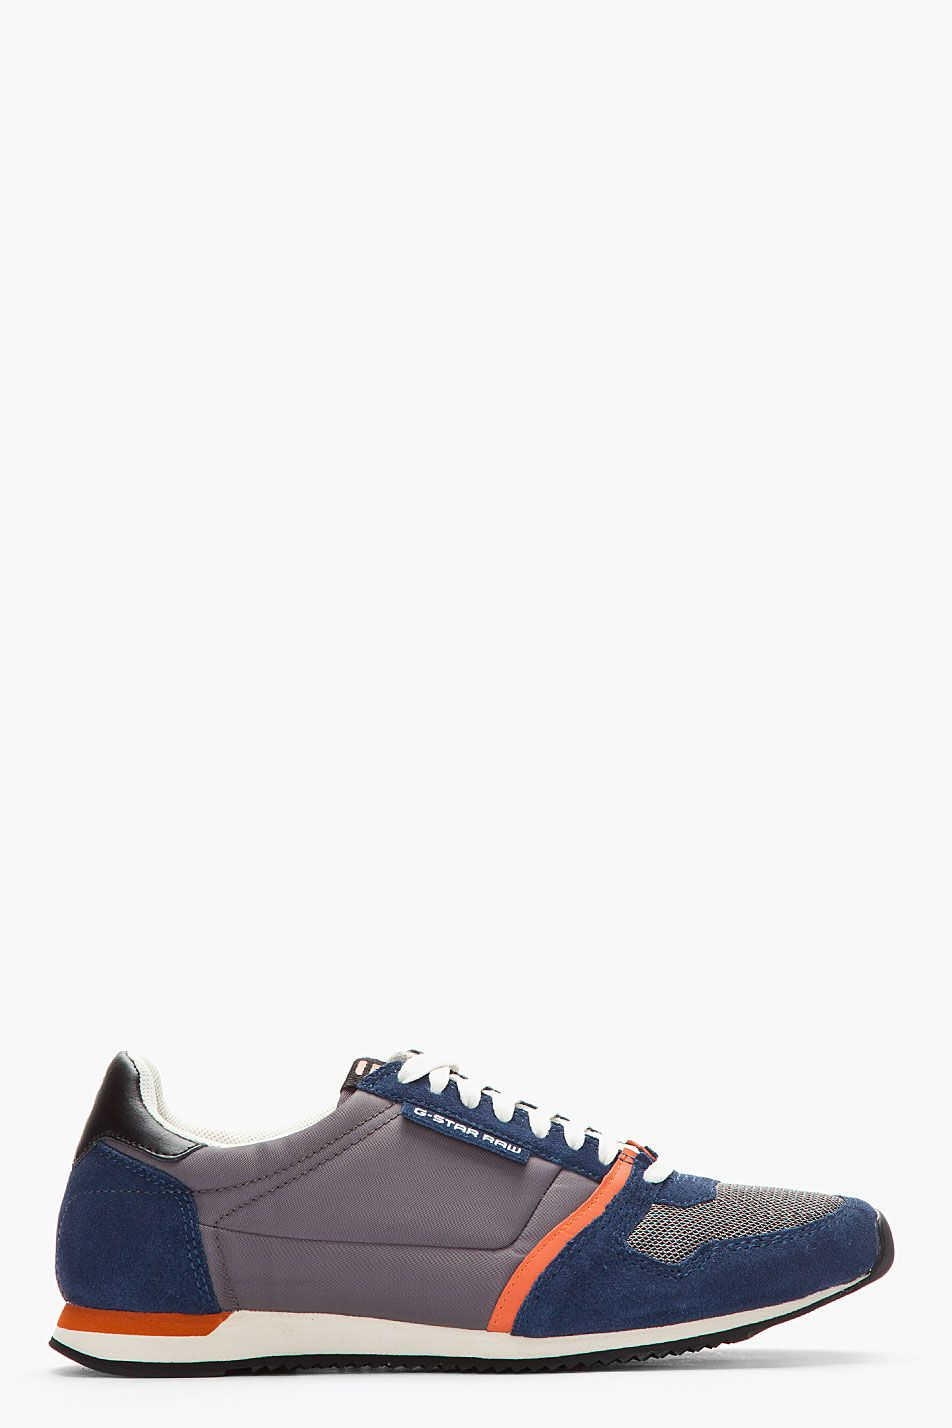 G-STAR // NAVY SUEDE-TRIMMED FUTURA SNEAKERS.   Shoes   Pinterest ...